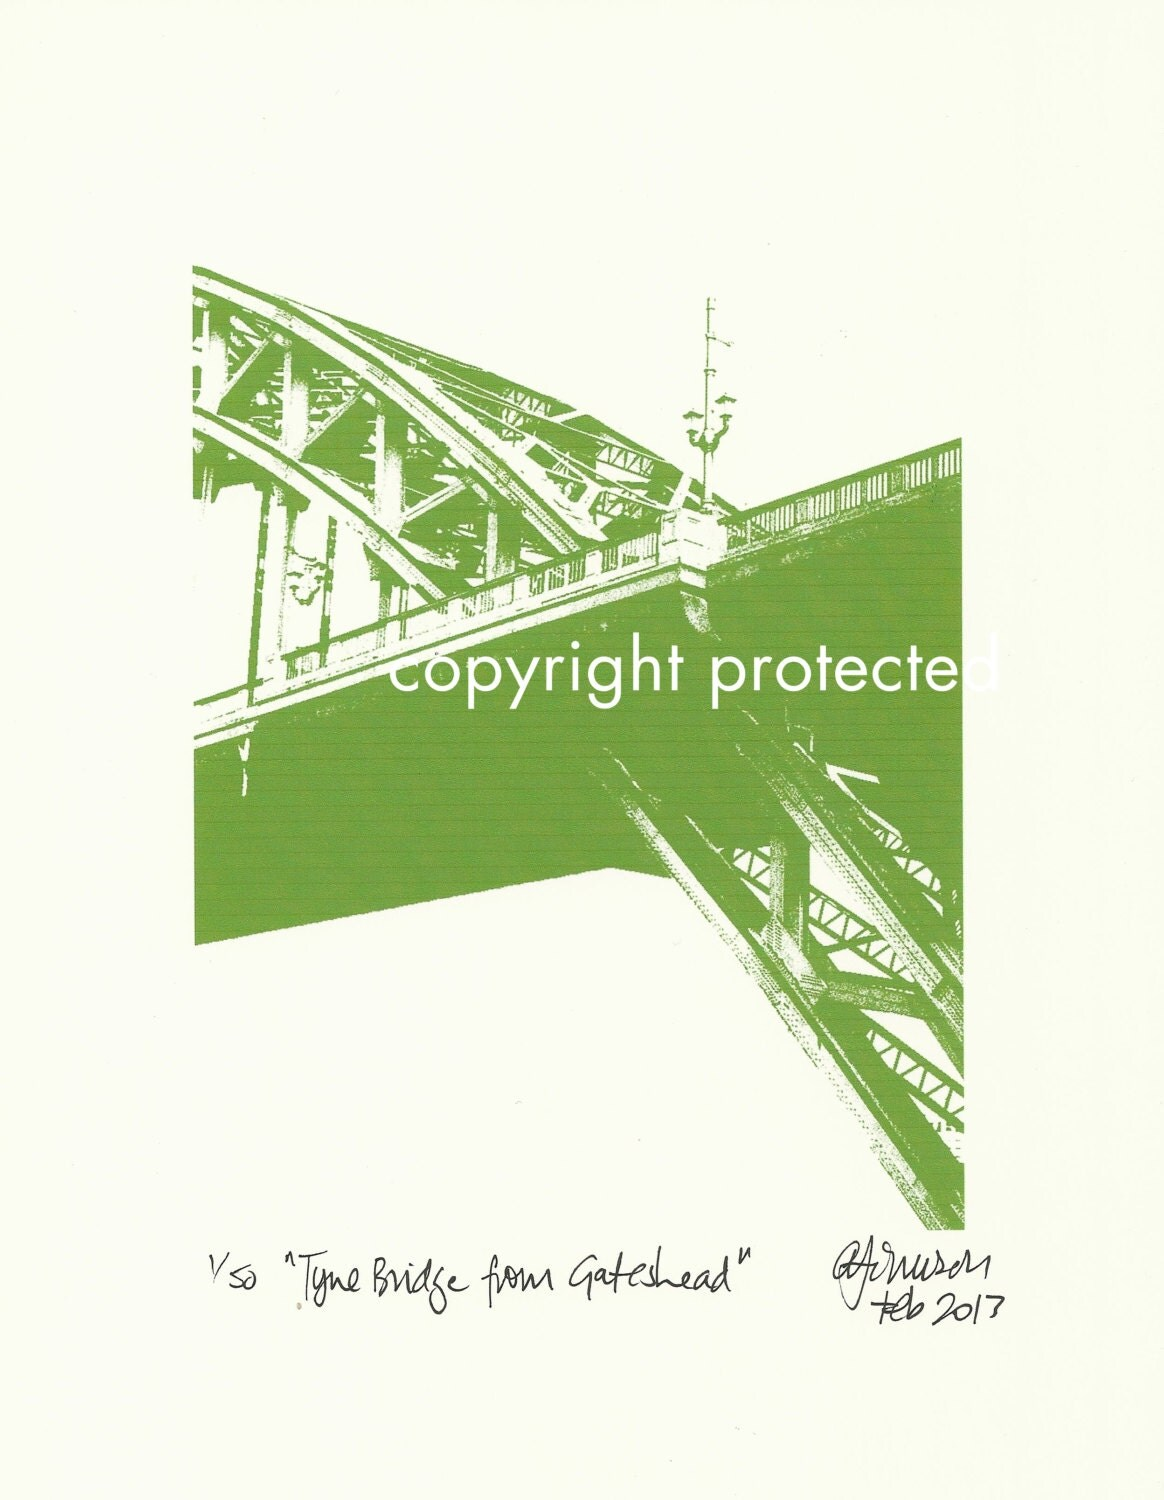 Limited Edition Print: The Tyne Bridge from Gateshead, Newcastle Upon Tyne / Gateshead, England, UK